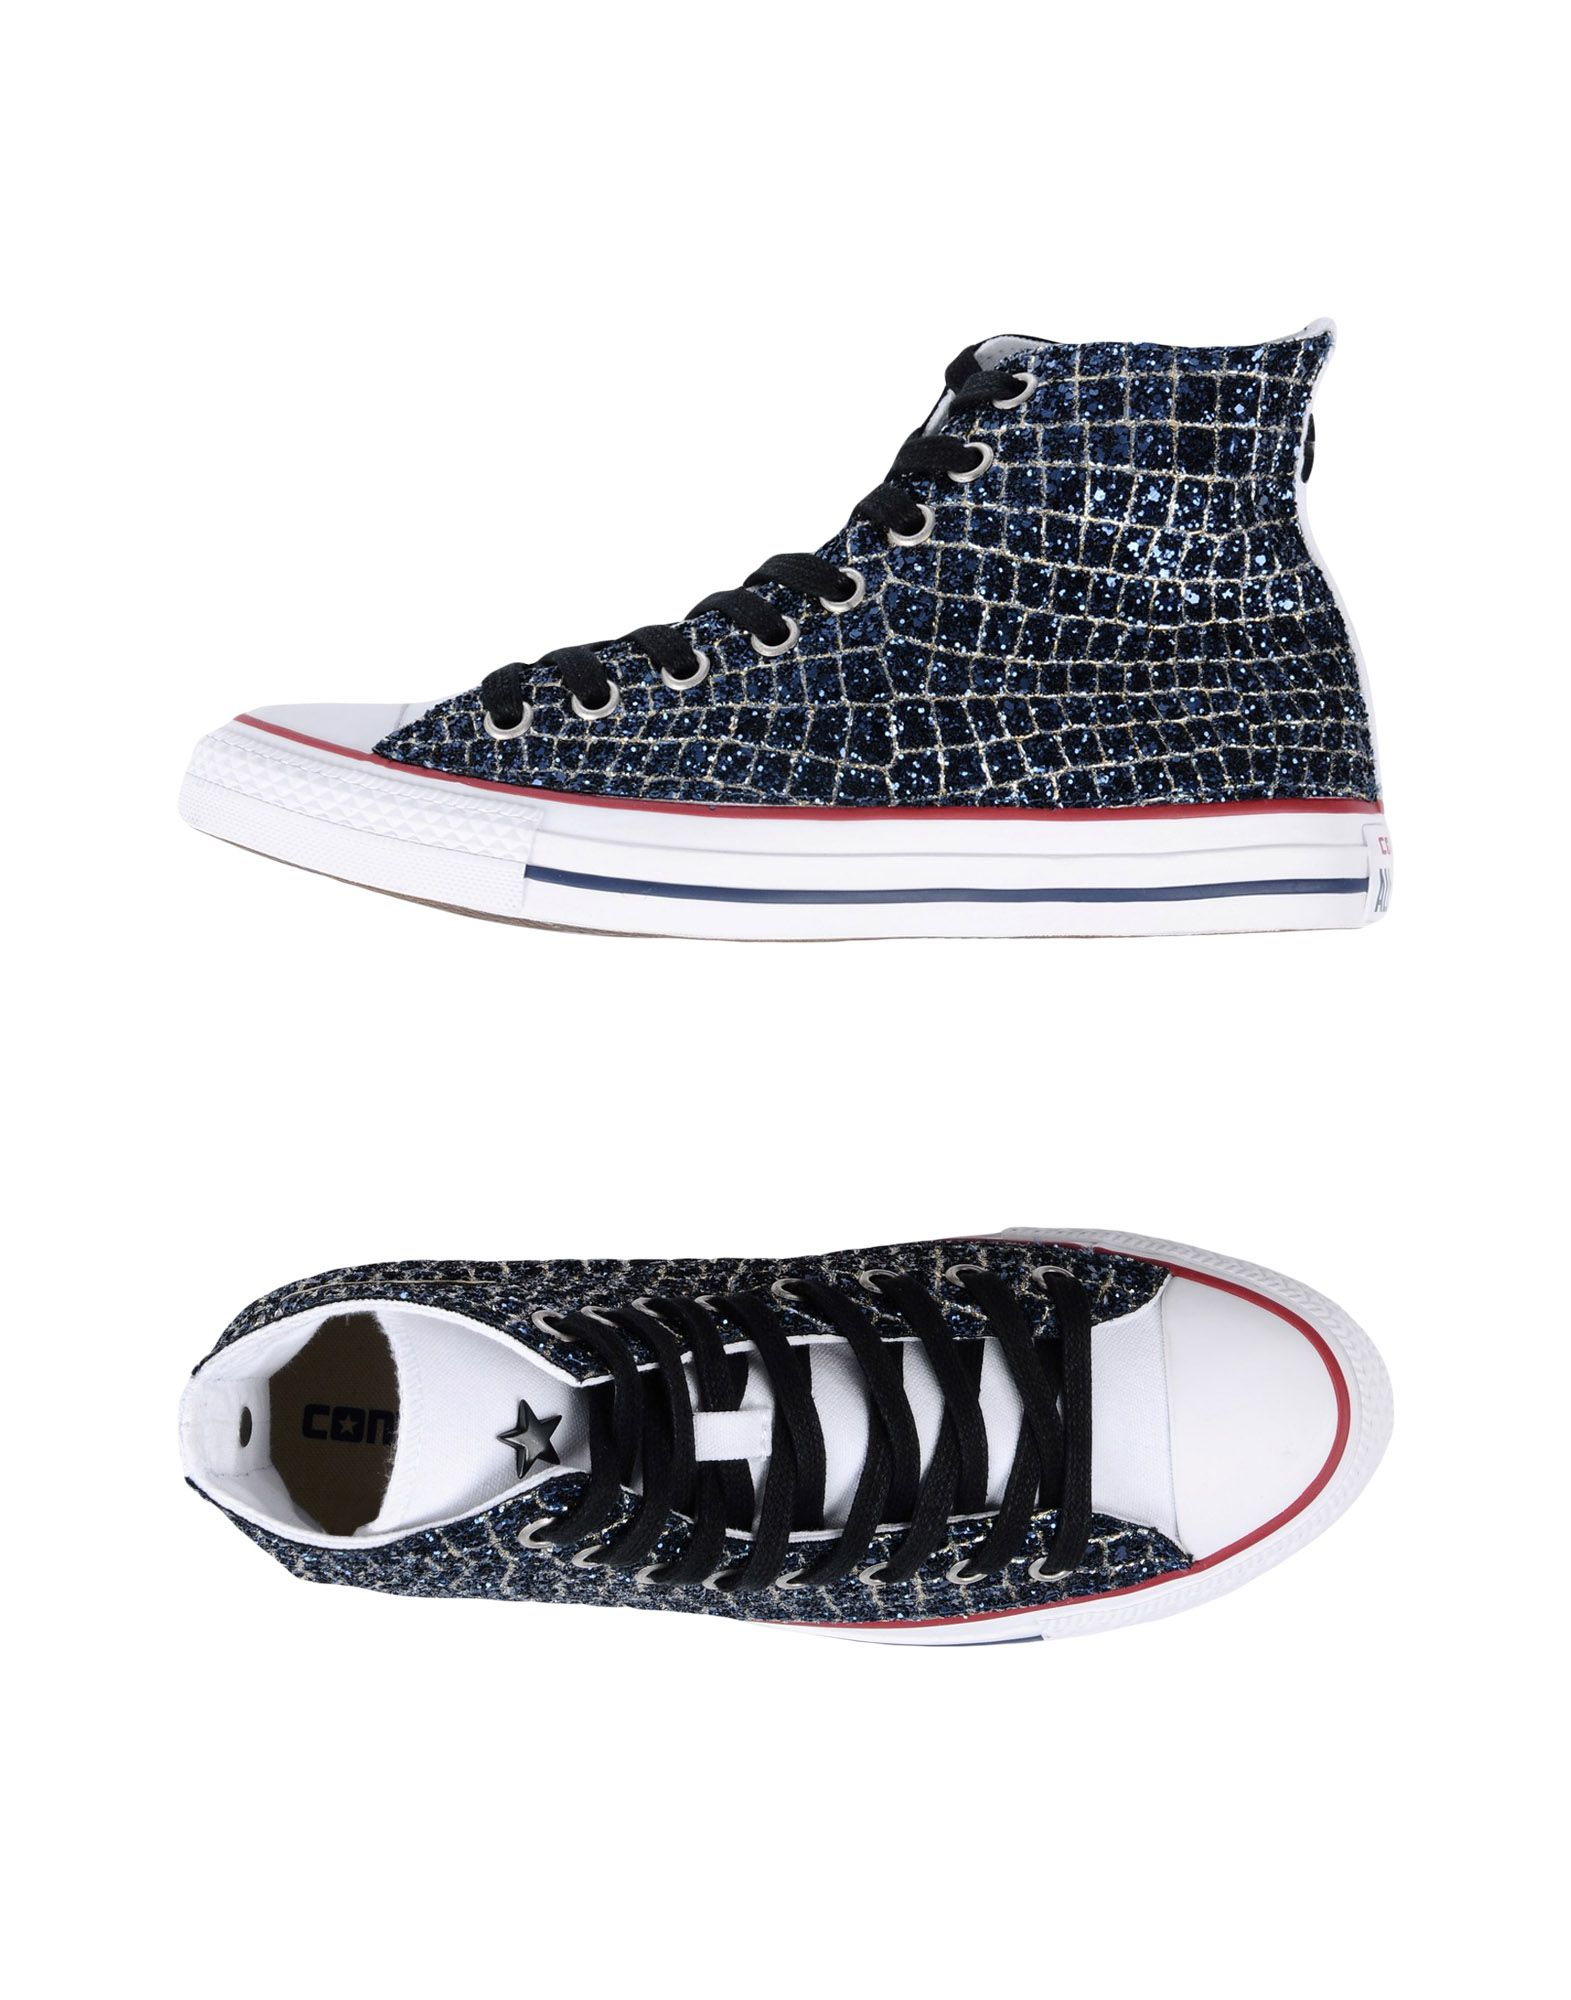 Sneakers Converse Limited Edition Ctas Hi Canvas/Synthetic Ltd - Donna - Acquista online su